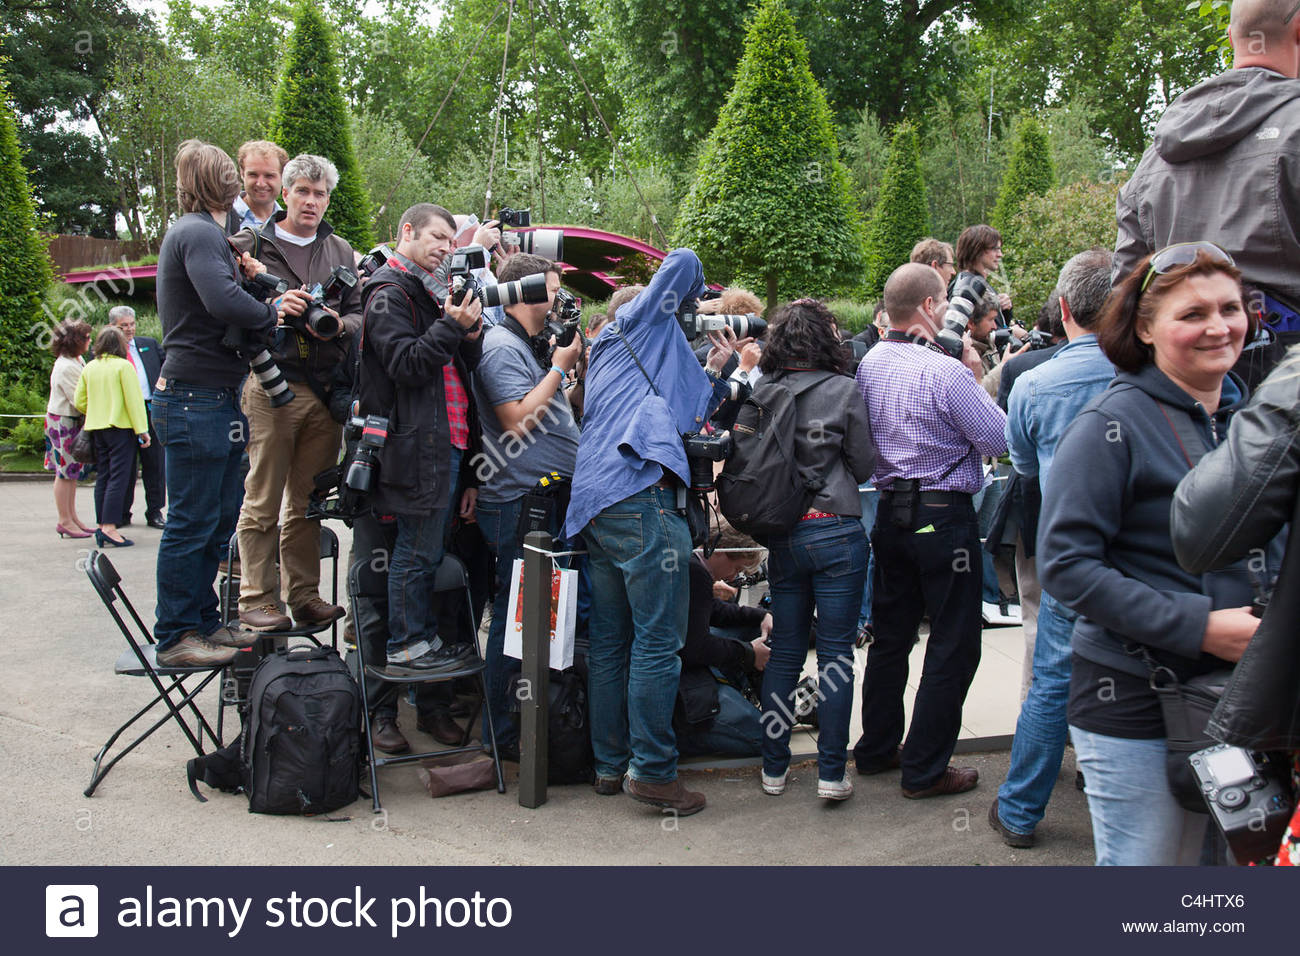 Press Day at RHS Chelsea Flower Show, London.  Pack of press photographers gathered to photograph a celebrity - Stock Image